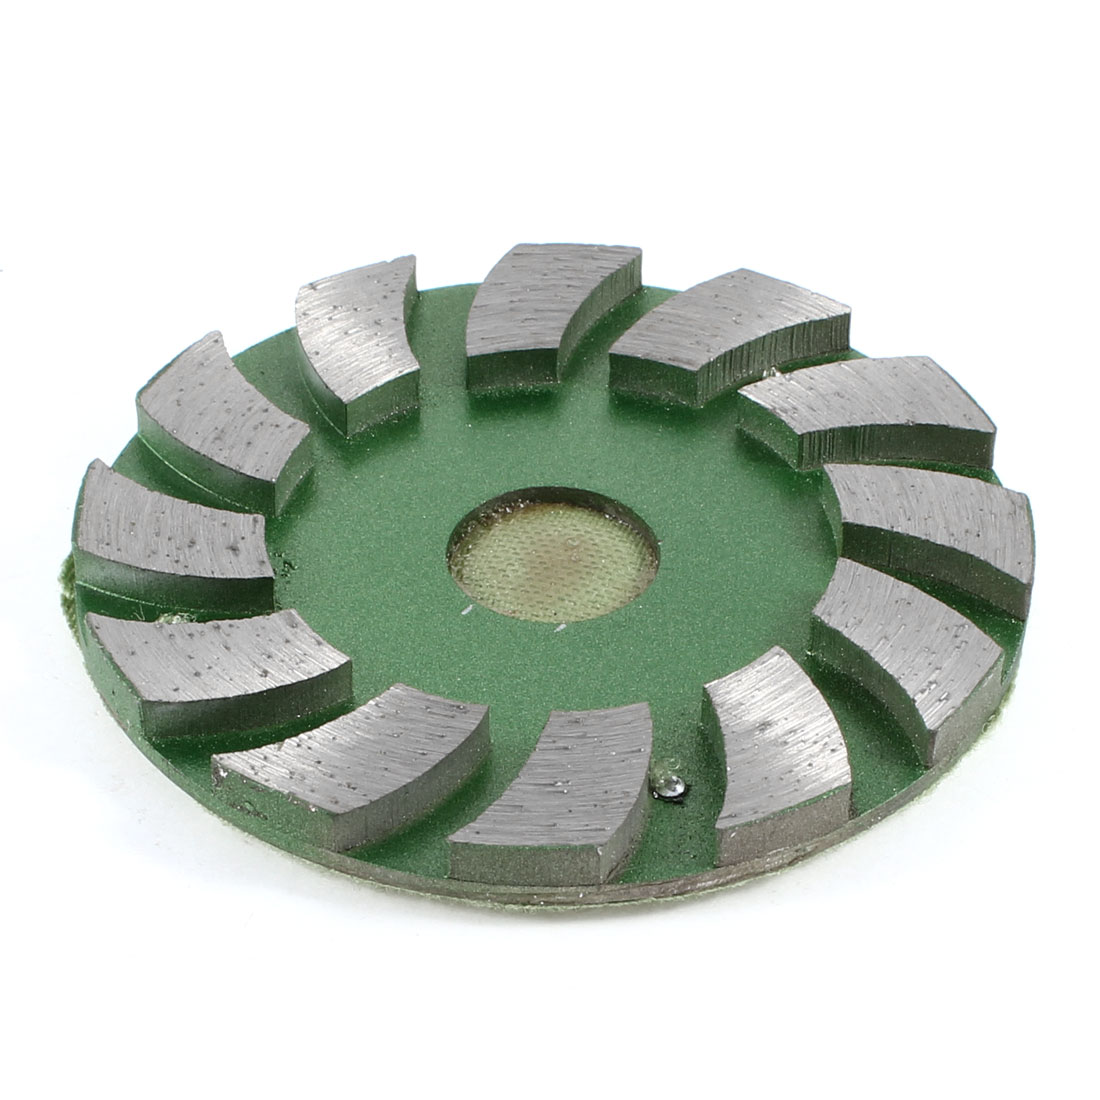 "Spiral 12 Segments 2cm Hole 3.5"" Outside Diameter Turbo Cup Wheel"